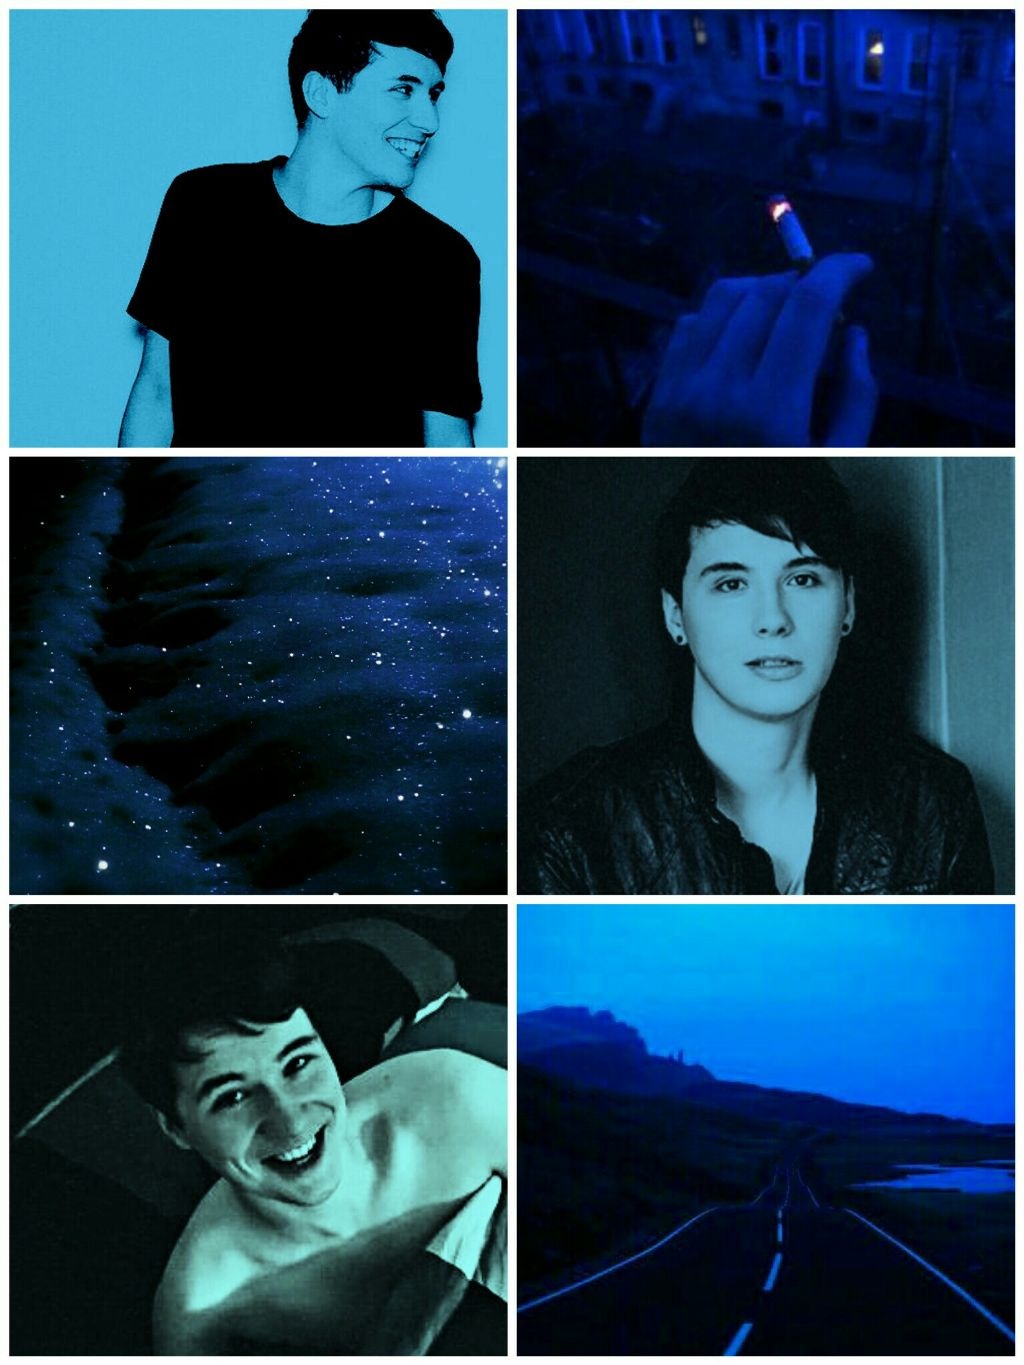 Follow me on IG! @outcast.in.the.shadows  #request  #danisnotonfire  #danhowell  #midnightblue  #blue  #aesthetic